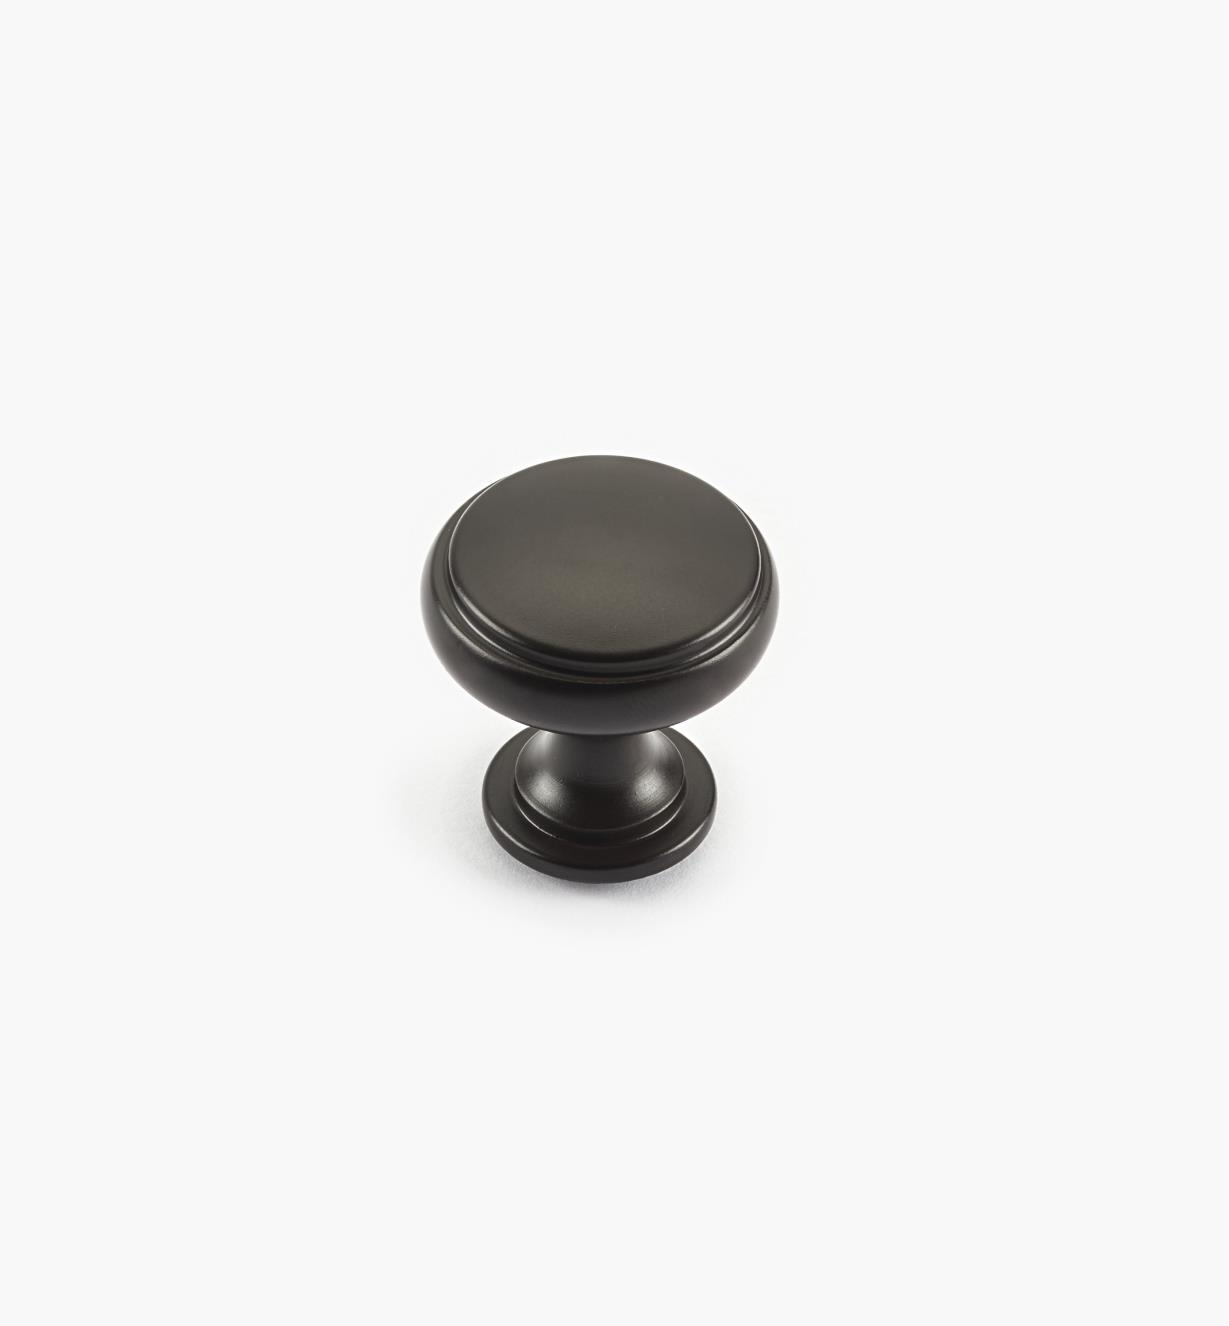 "02W4047 - 1 3/16"" Oil-Rubbed Bronze Knob"